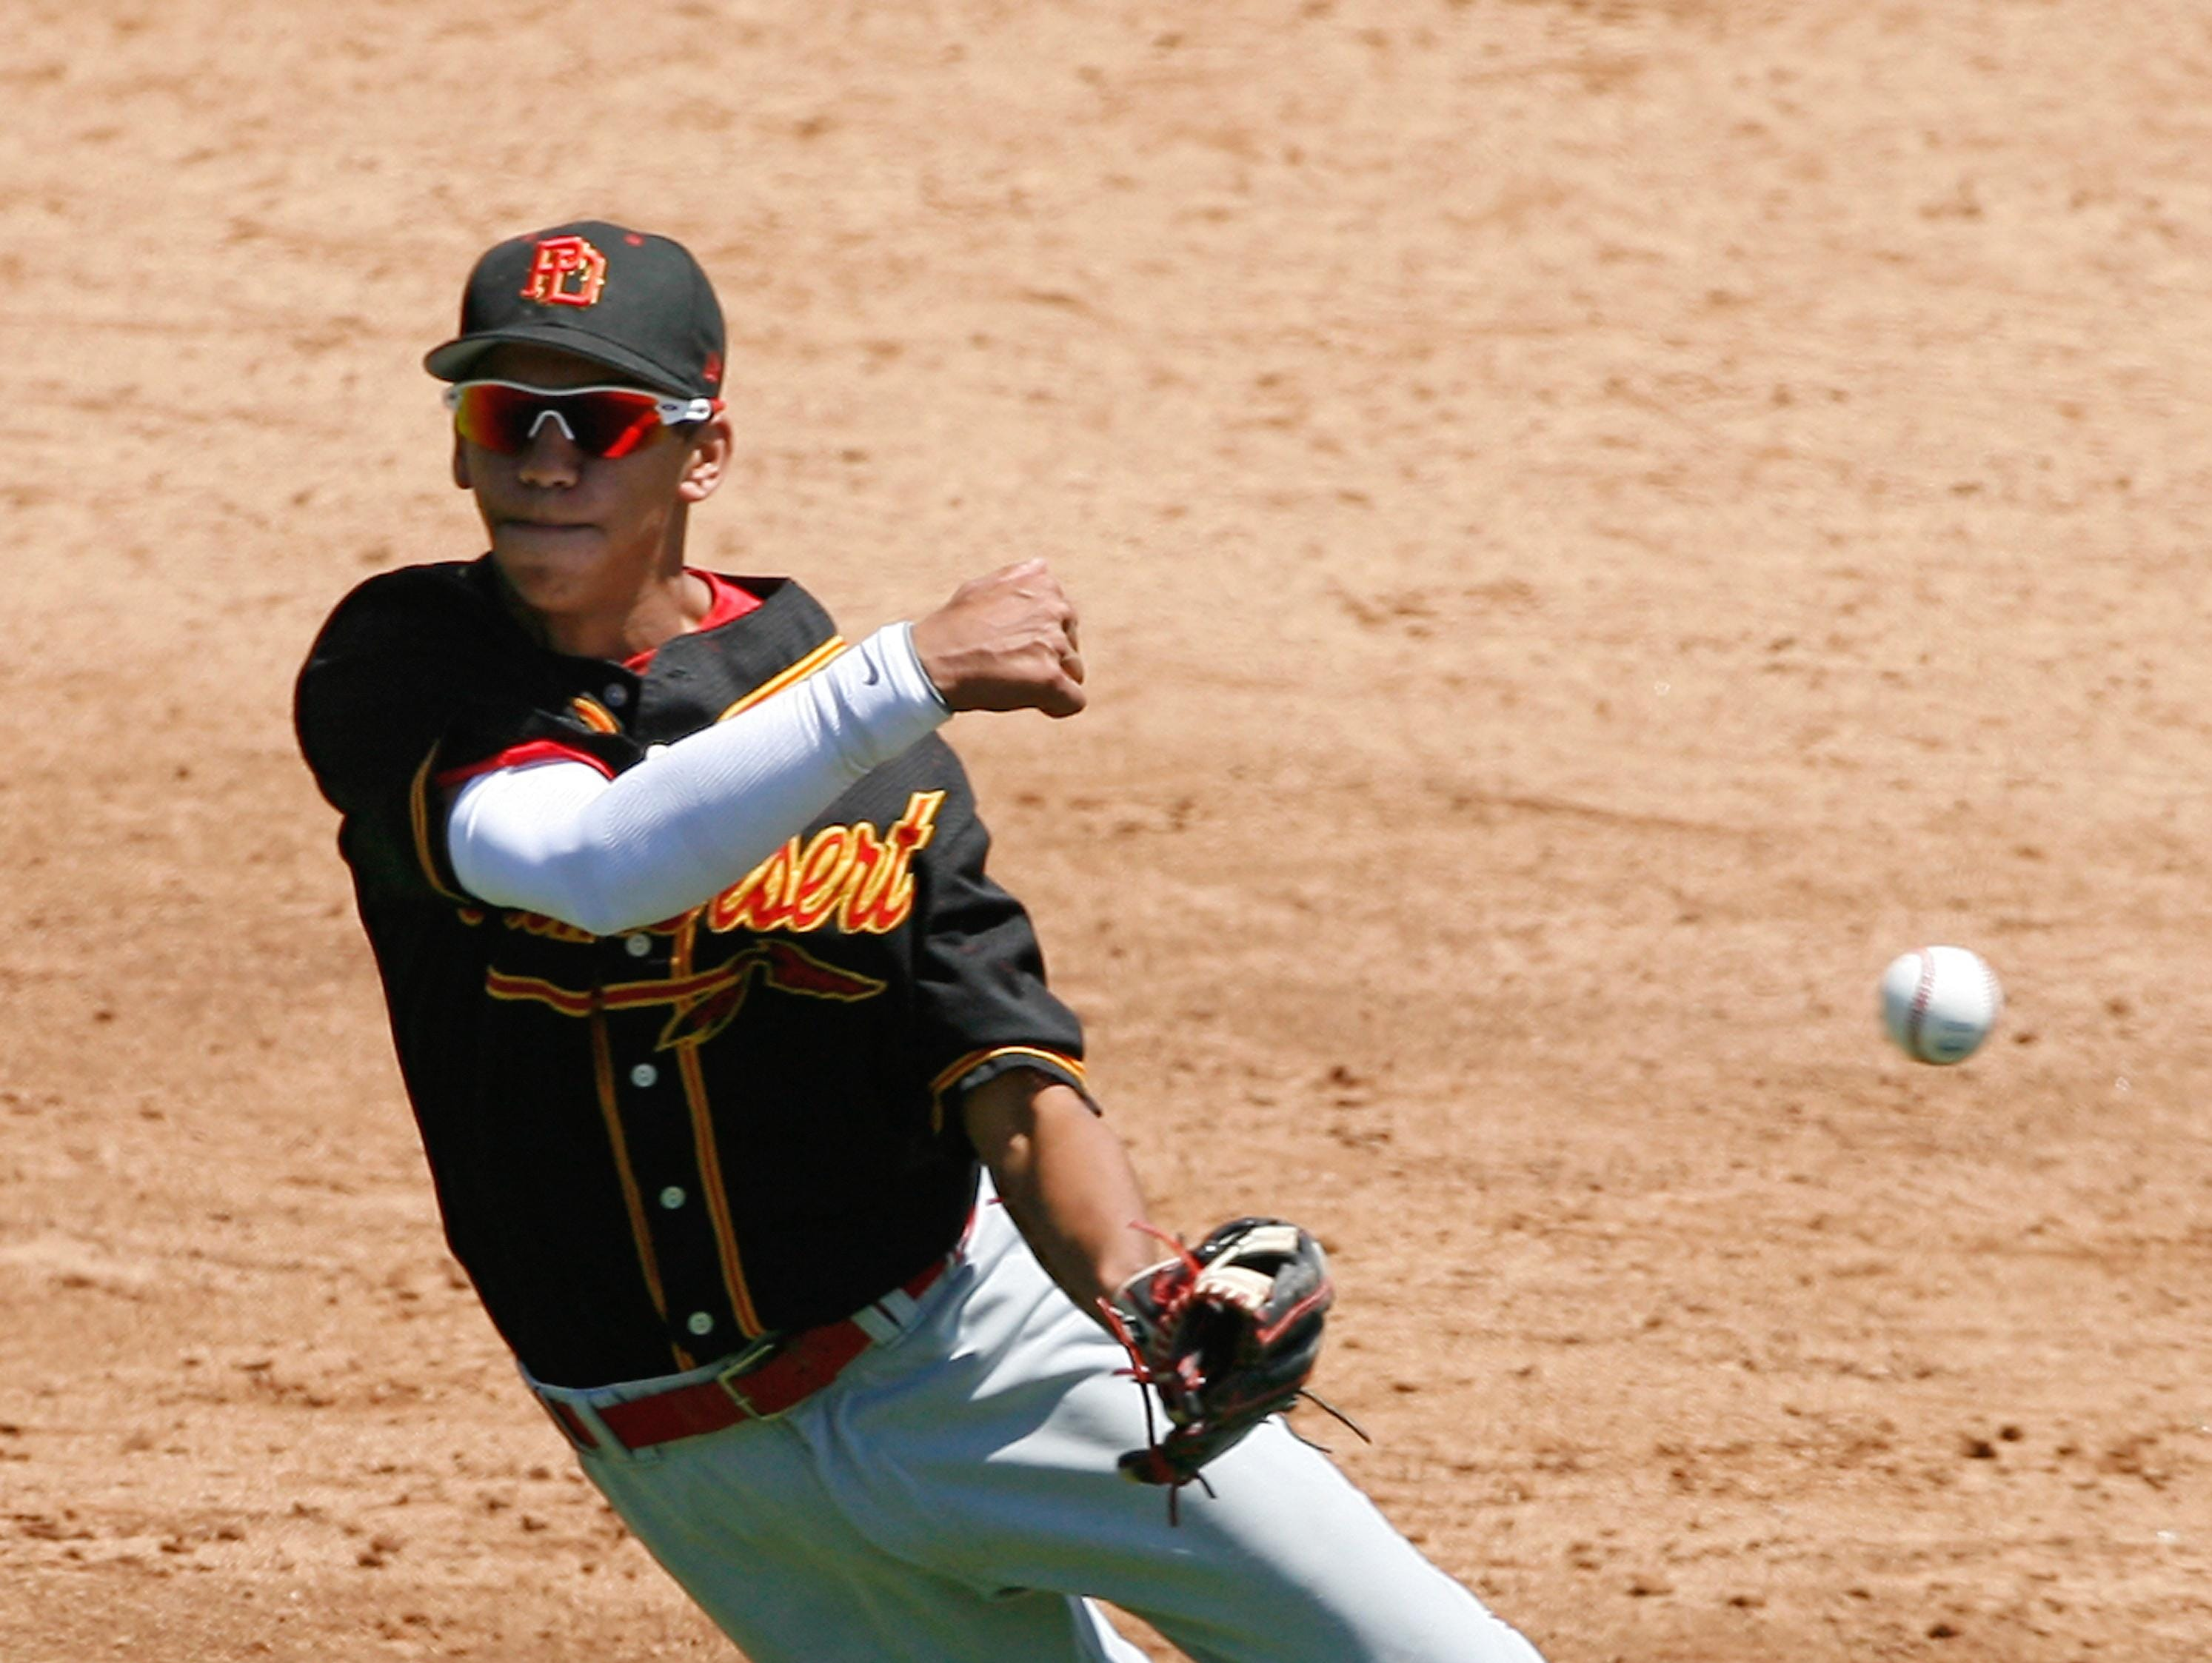 Scotty Burcham, who graduated from Palm Desert in 2011, was selected in the 25th round of the MLB draft by the Colorado Rockies.